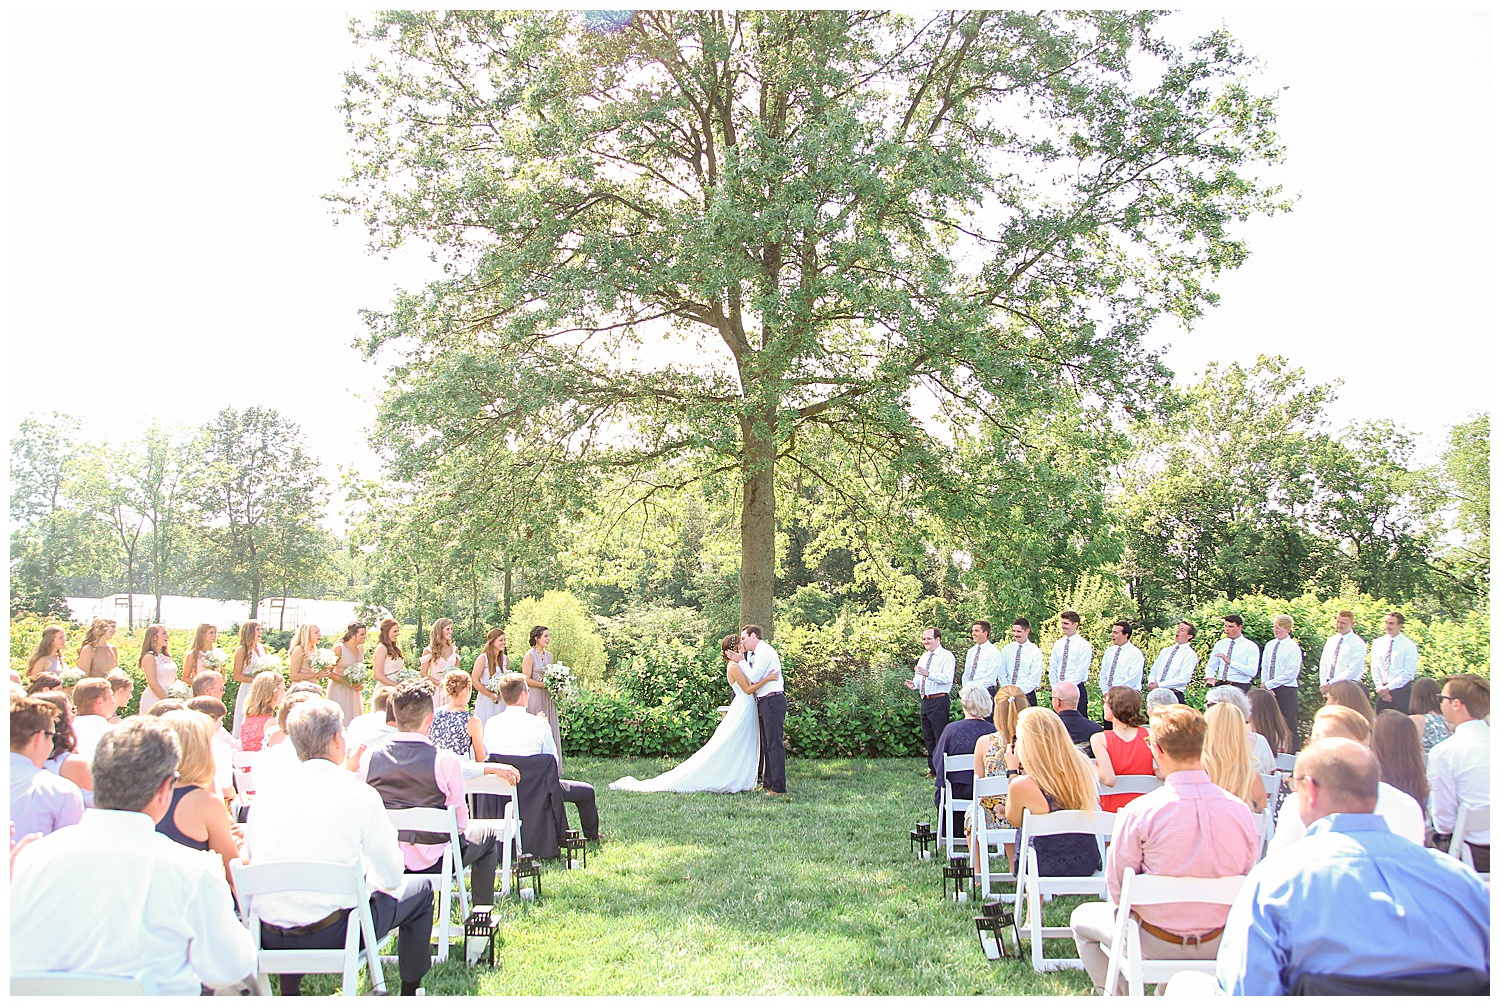 Jorgensen Farms Ohio Wedding Venue